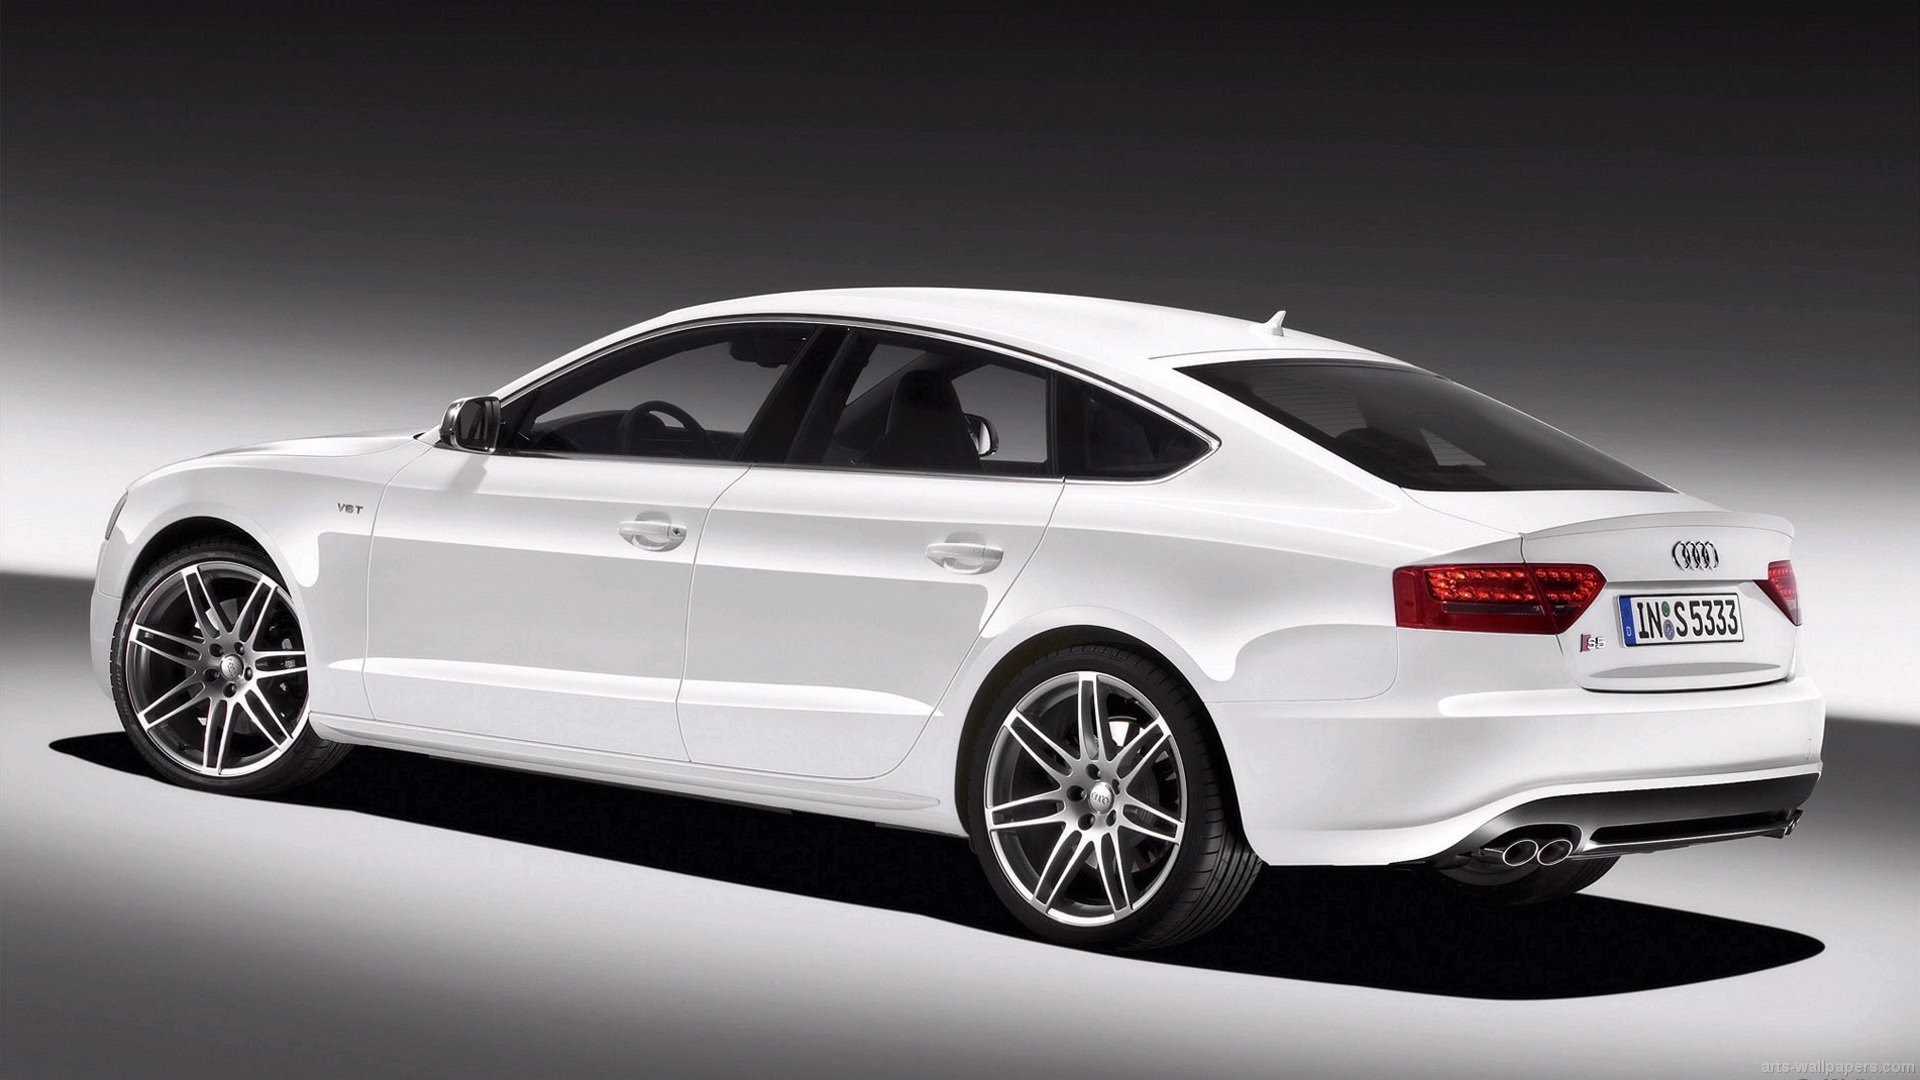 Audi Cars Hd Wallpapers 1080p Best Cars Wallpapers